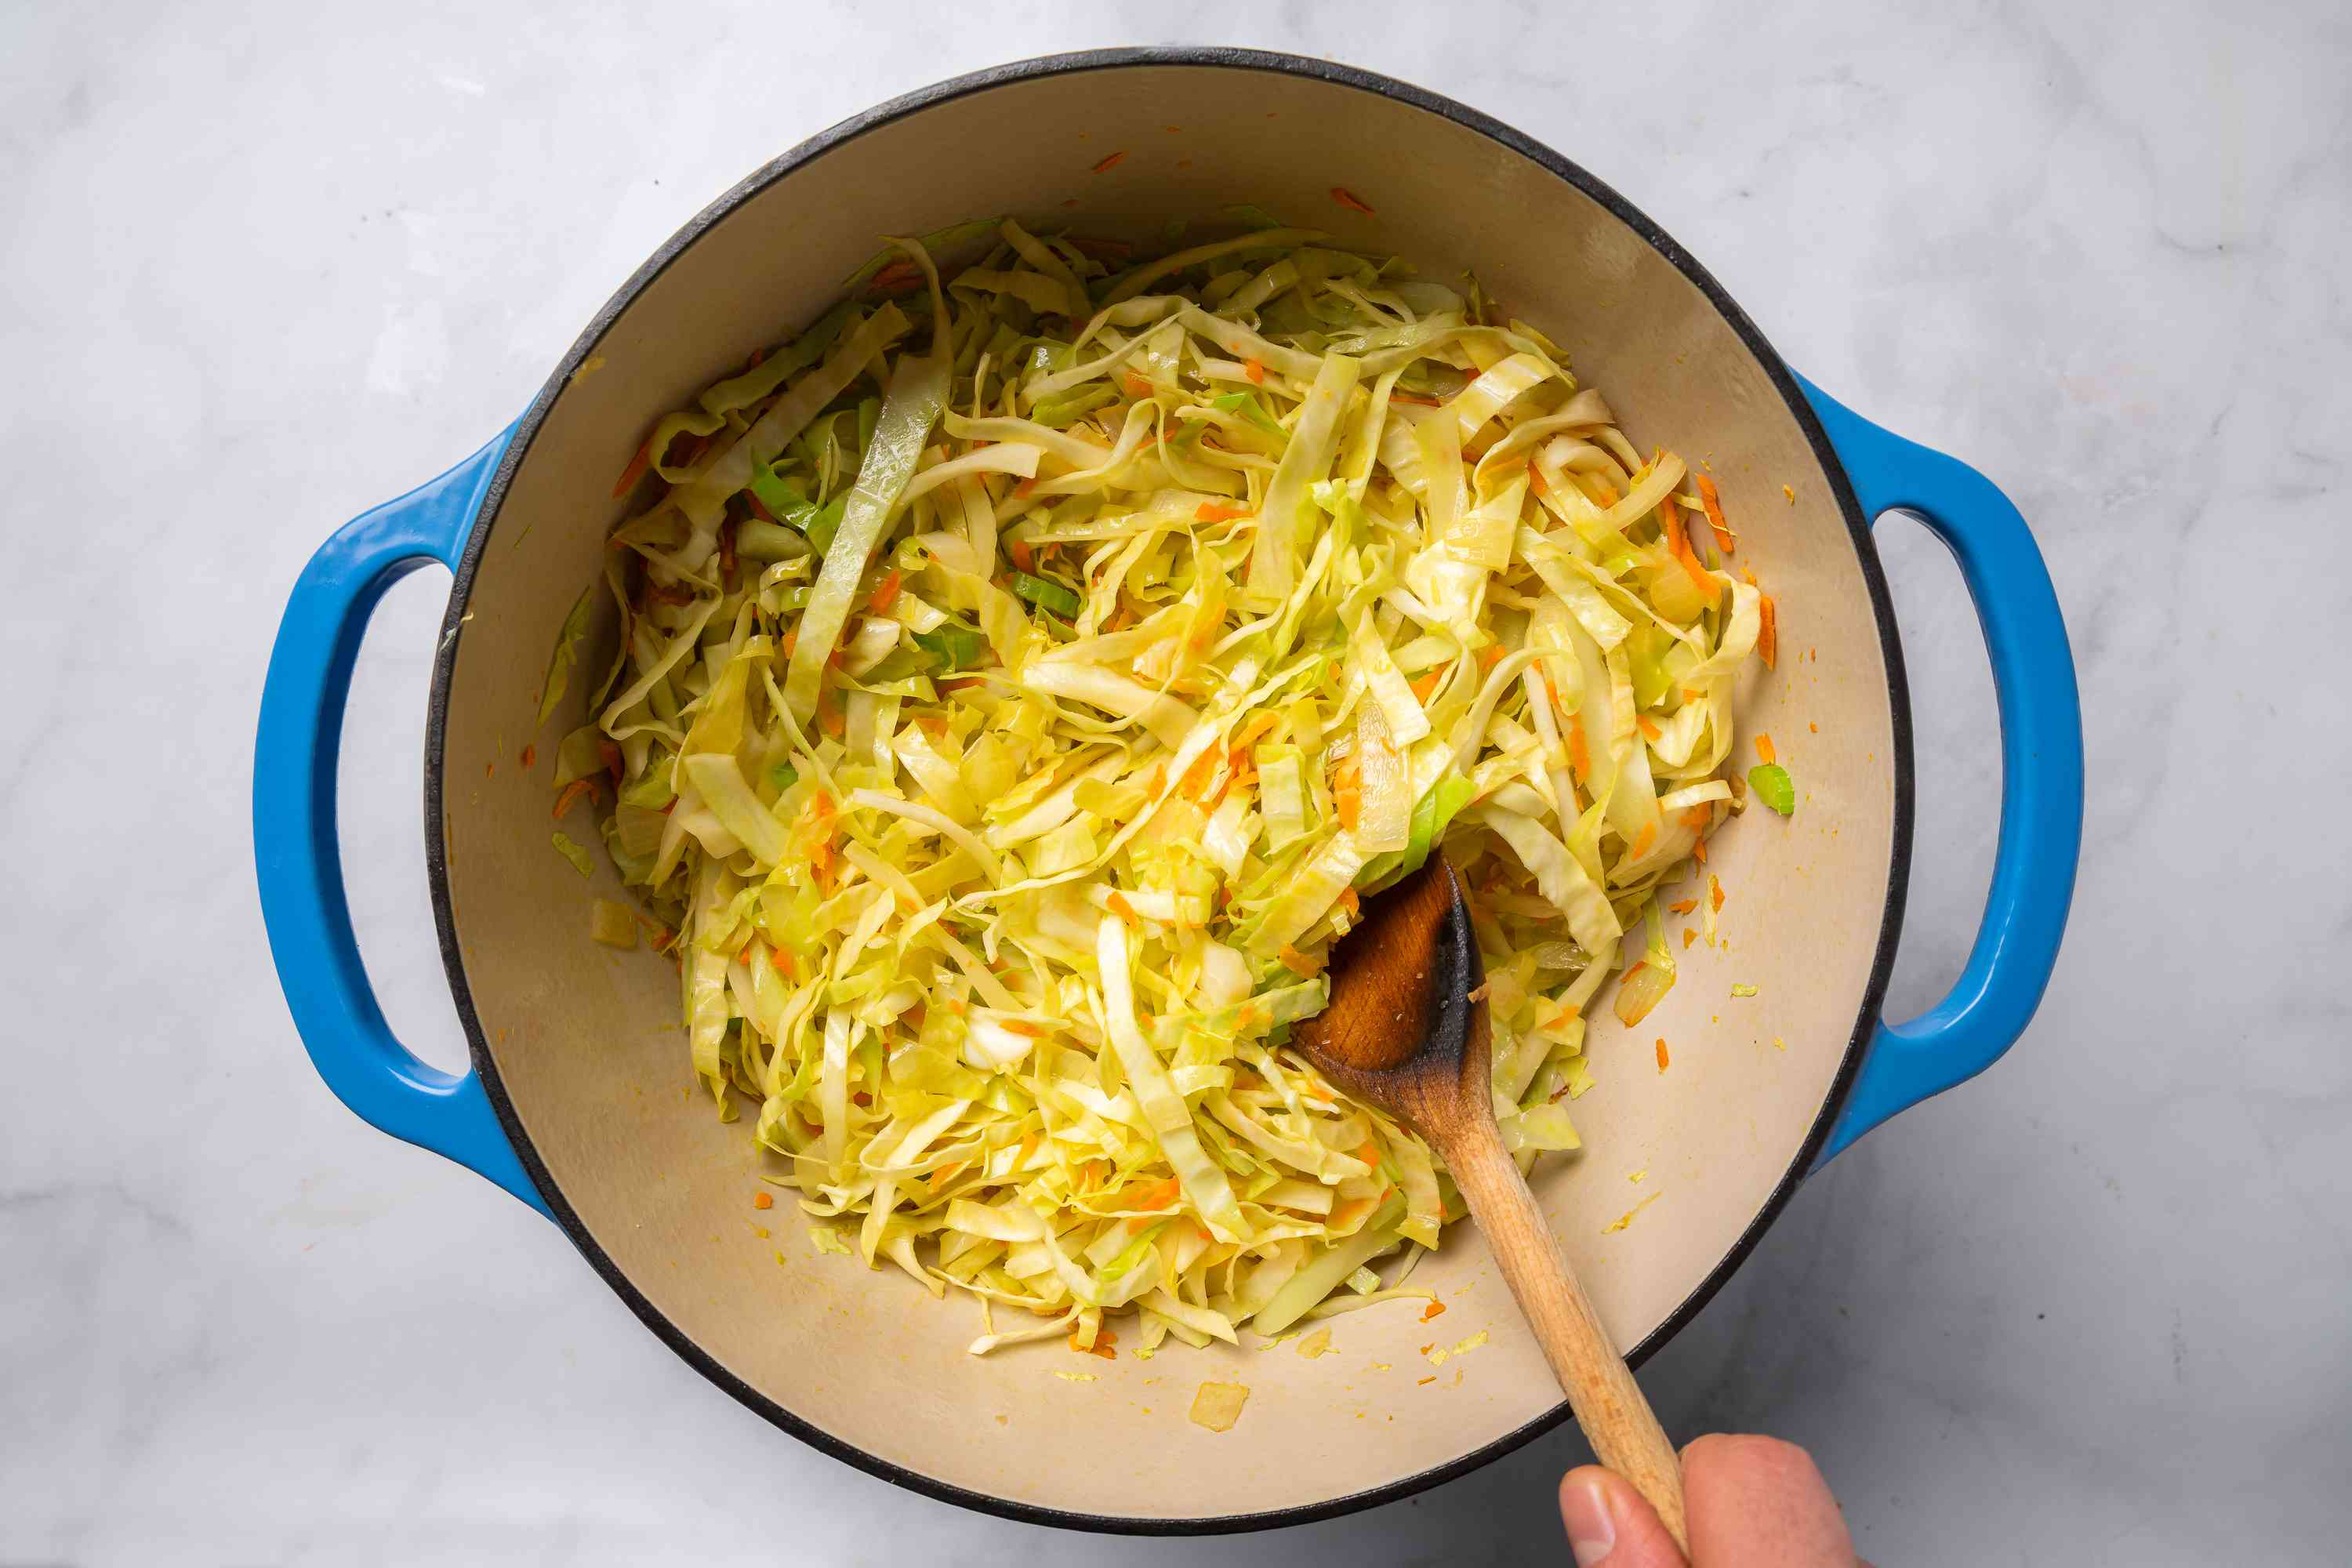 shredded cabbage, grated carrot, and chopped celery added to the onions in the Dutch oven